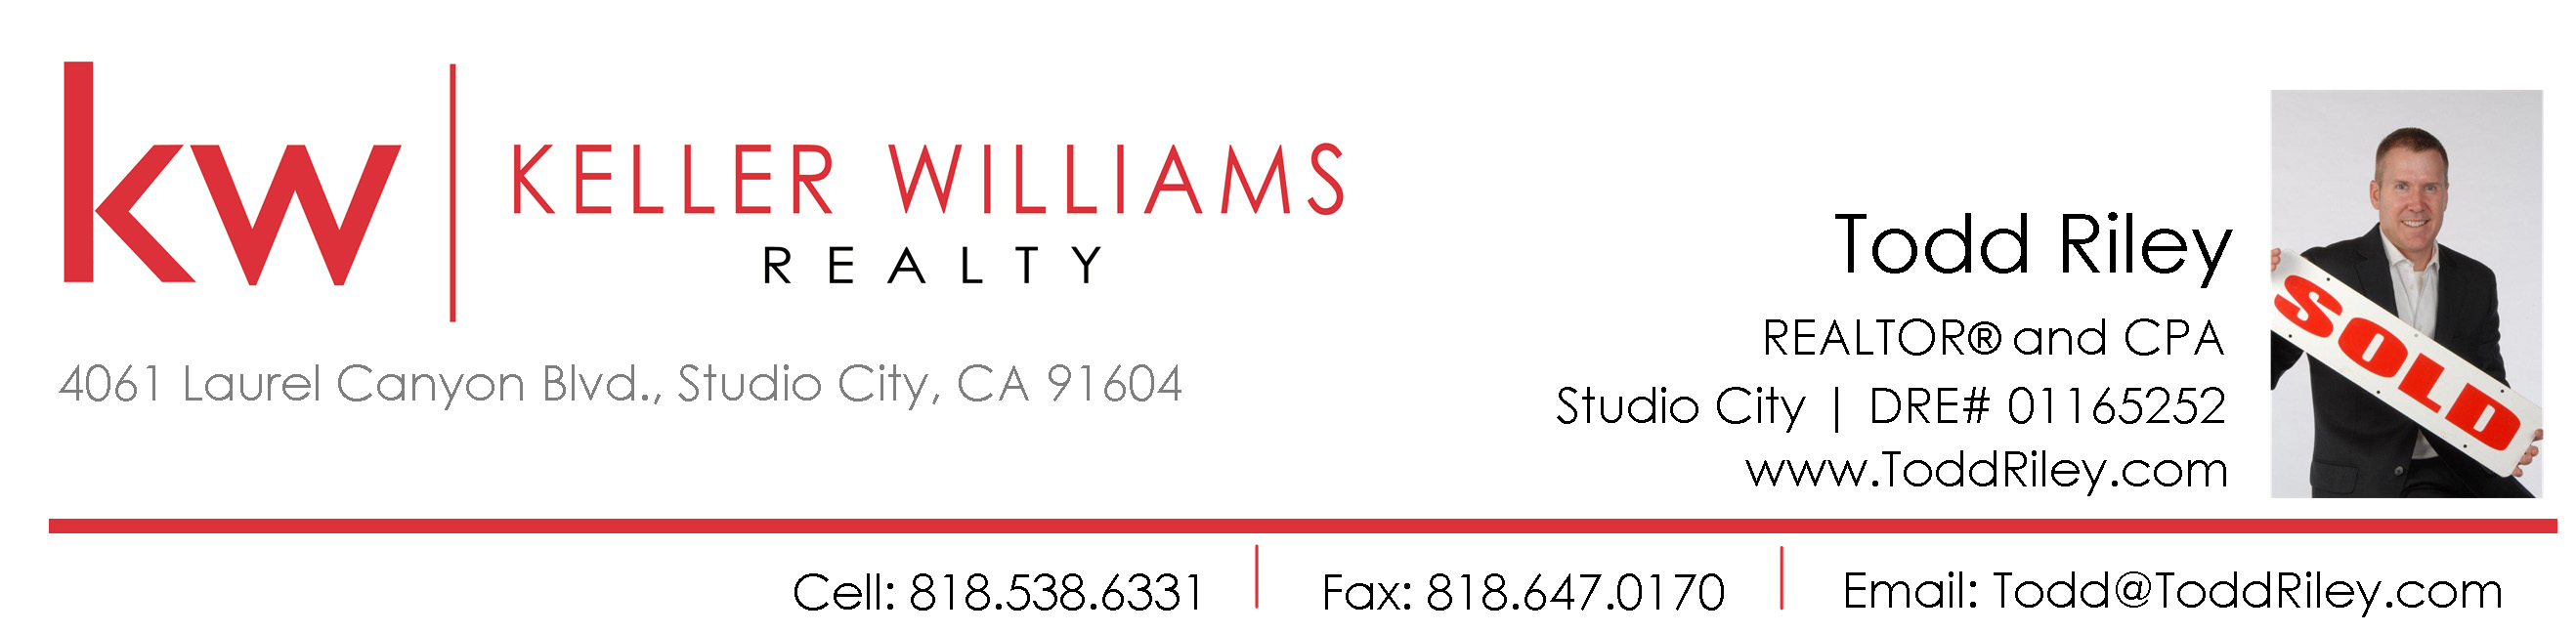 Todd Riley - San Fernando Valley Real Estate Agent